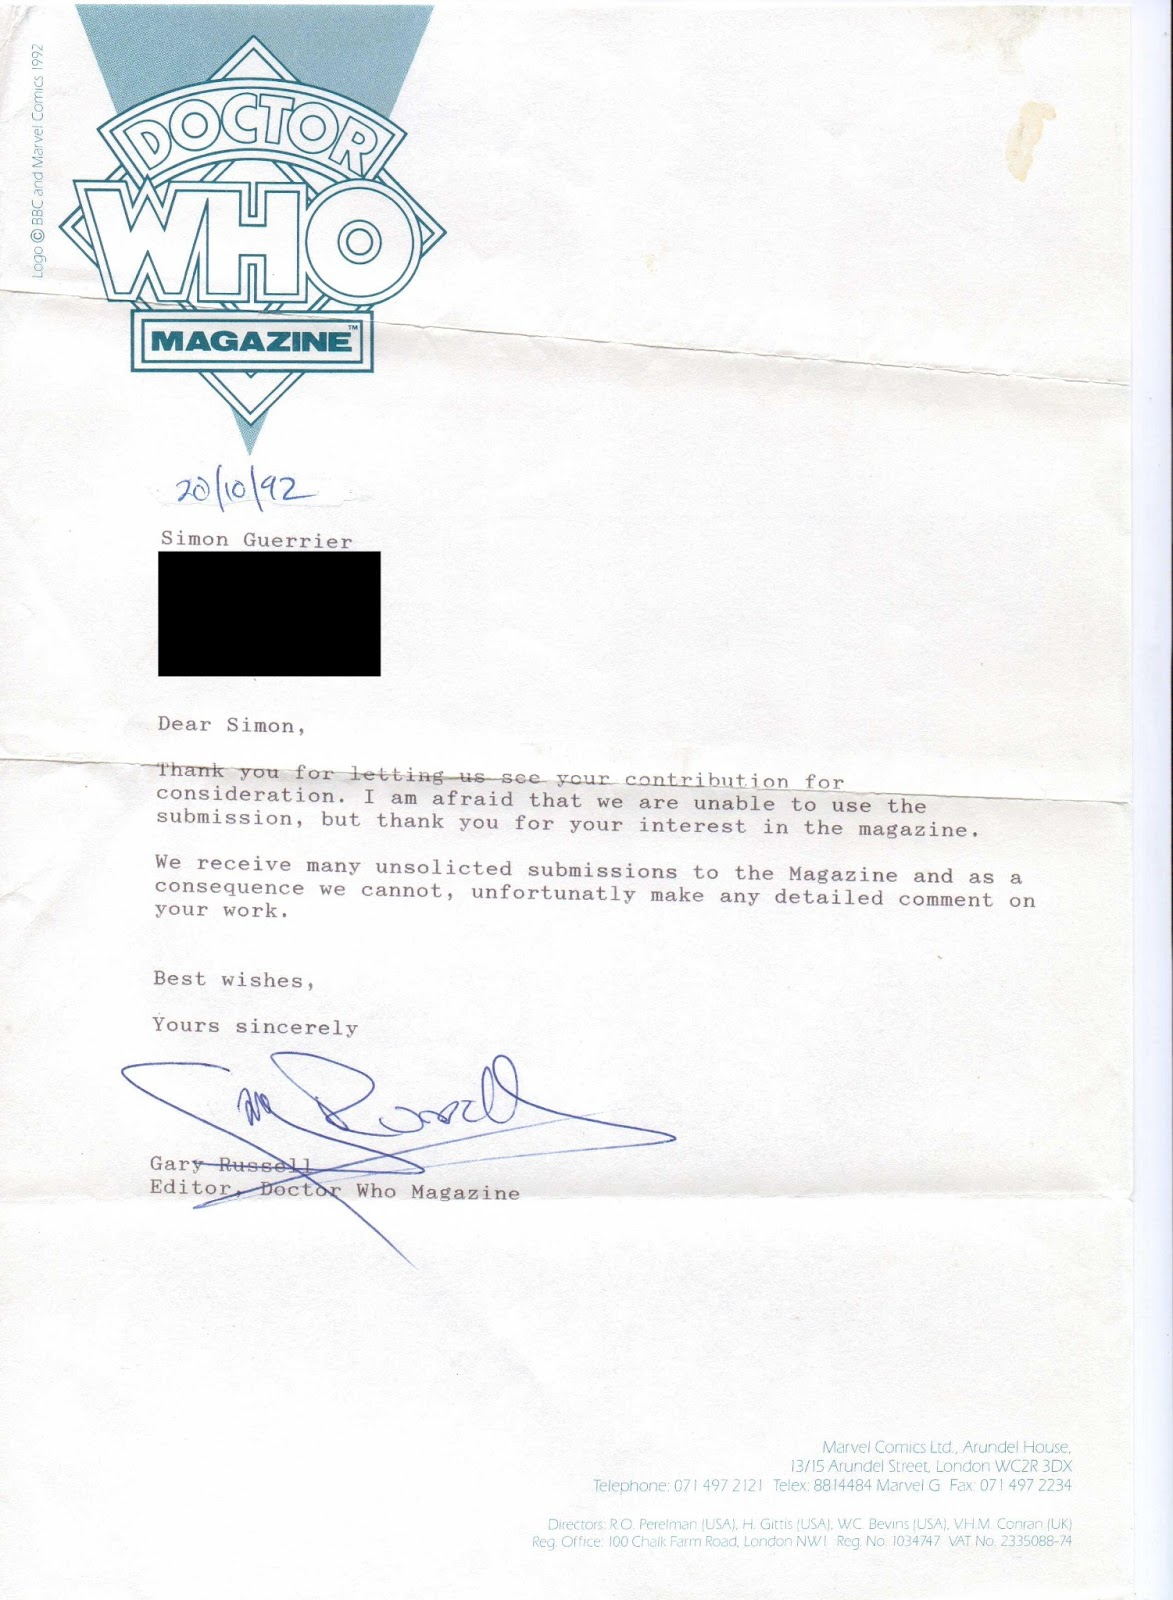 nothing tra la la my first ever rejection letter at the same time i also sent a script for a judge dredd story to 2000ad and the form rejection letter i got back wasn t even signed though someone had